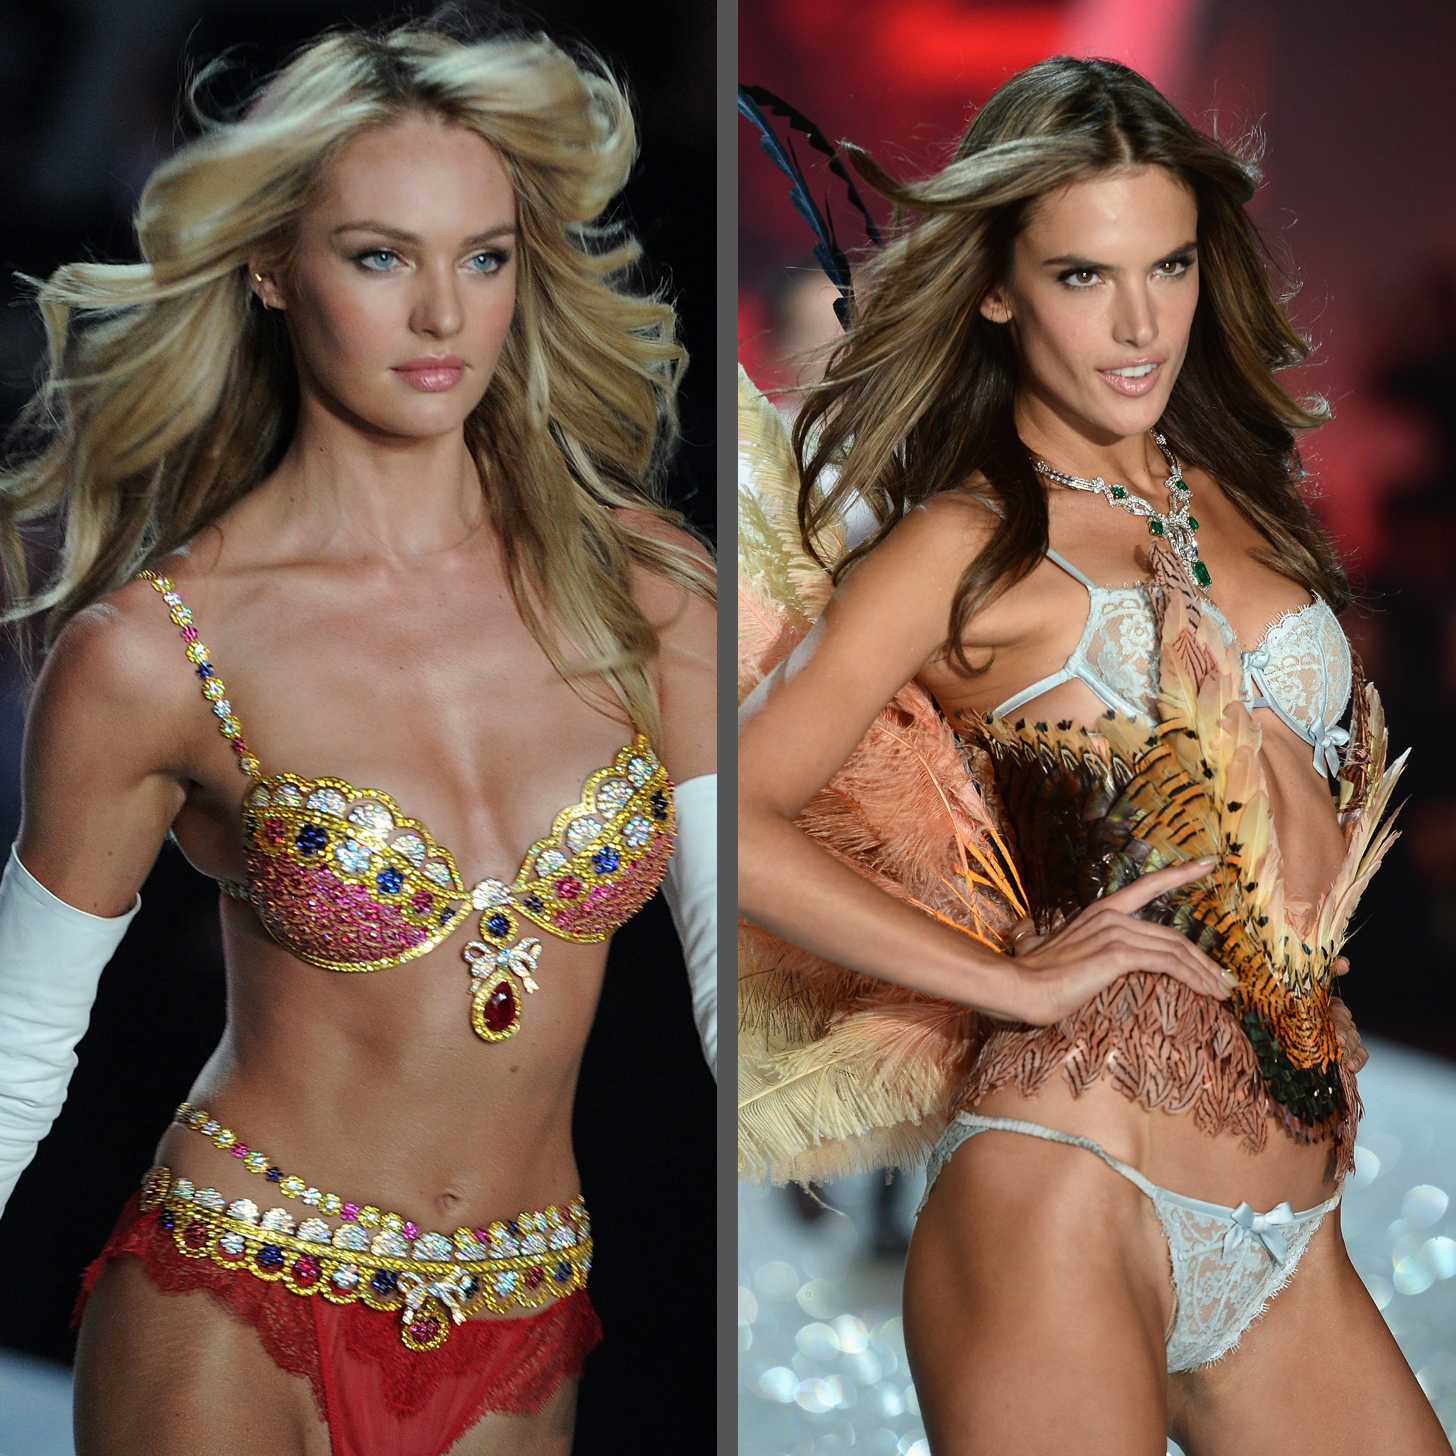 Fashion Show Victoria's Secret 2014 Full Share This Link